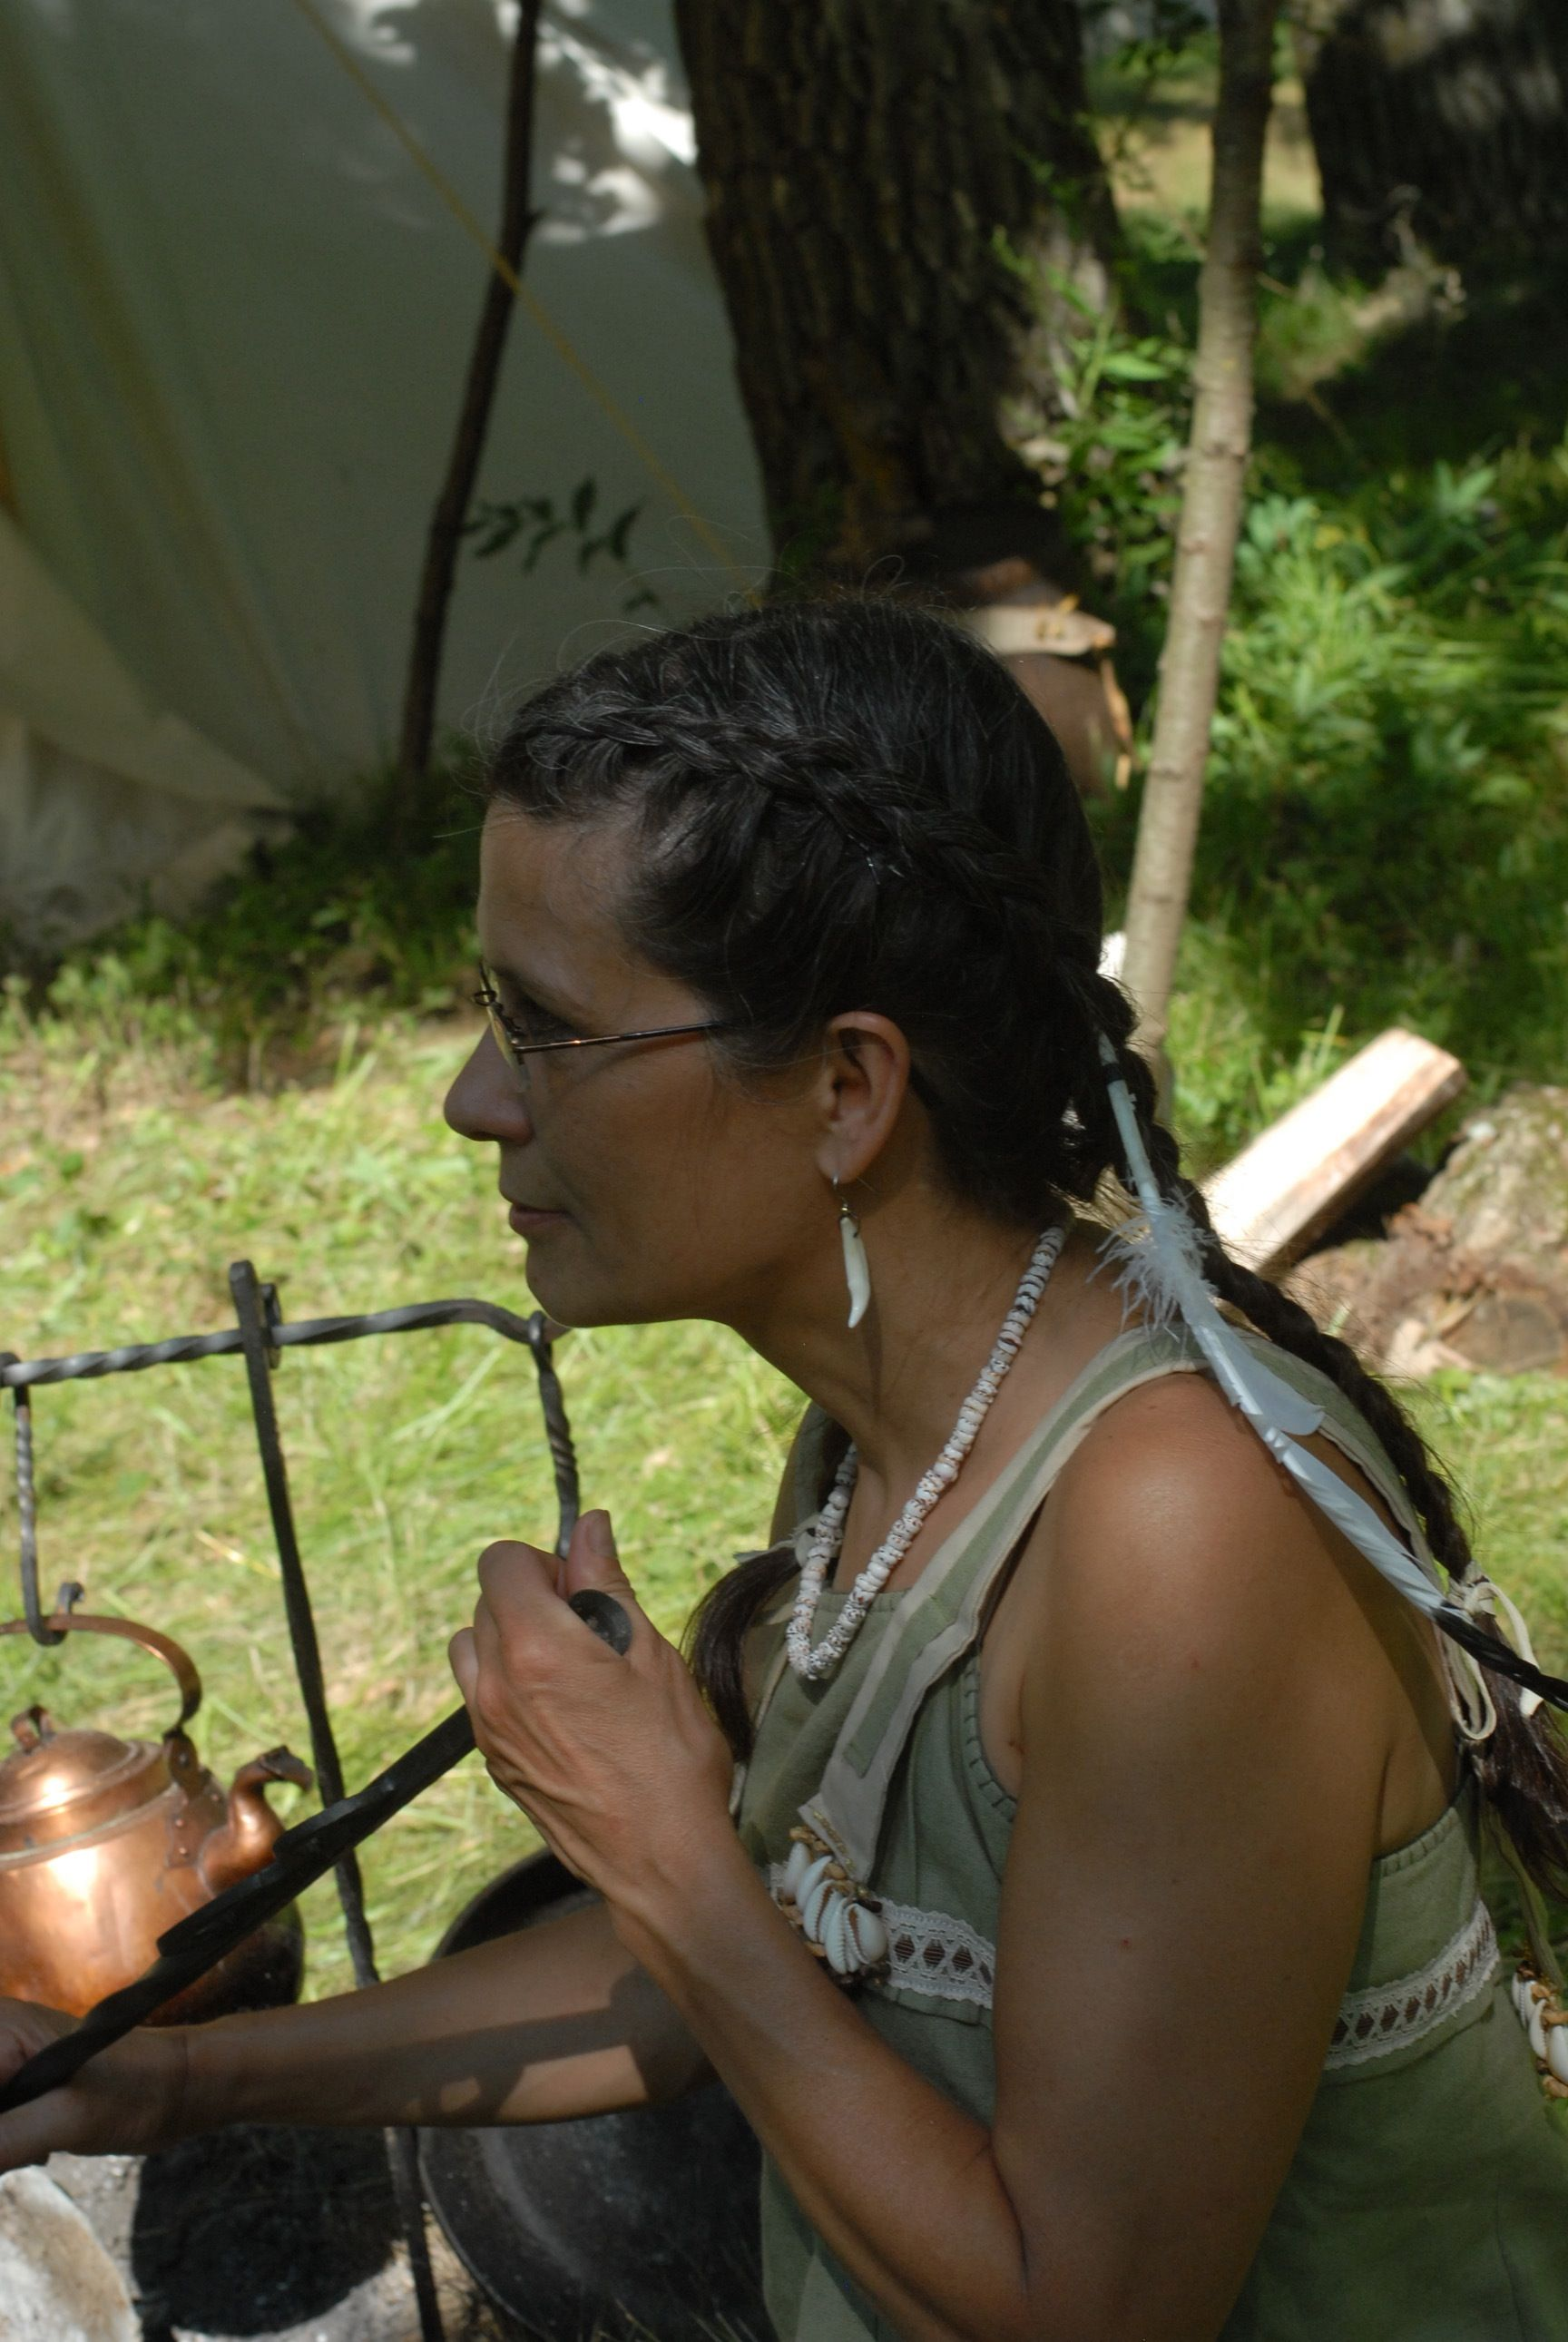 Mom at the four moons rising rendezvous 2014